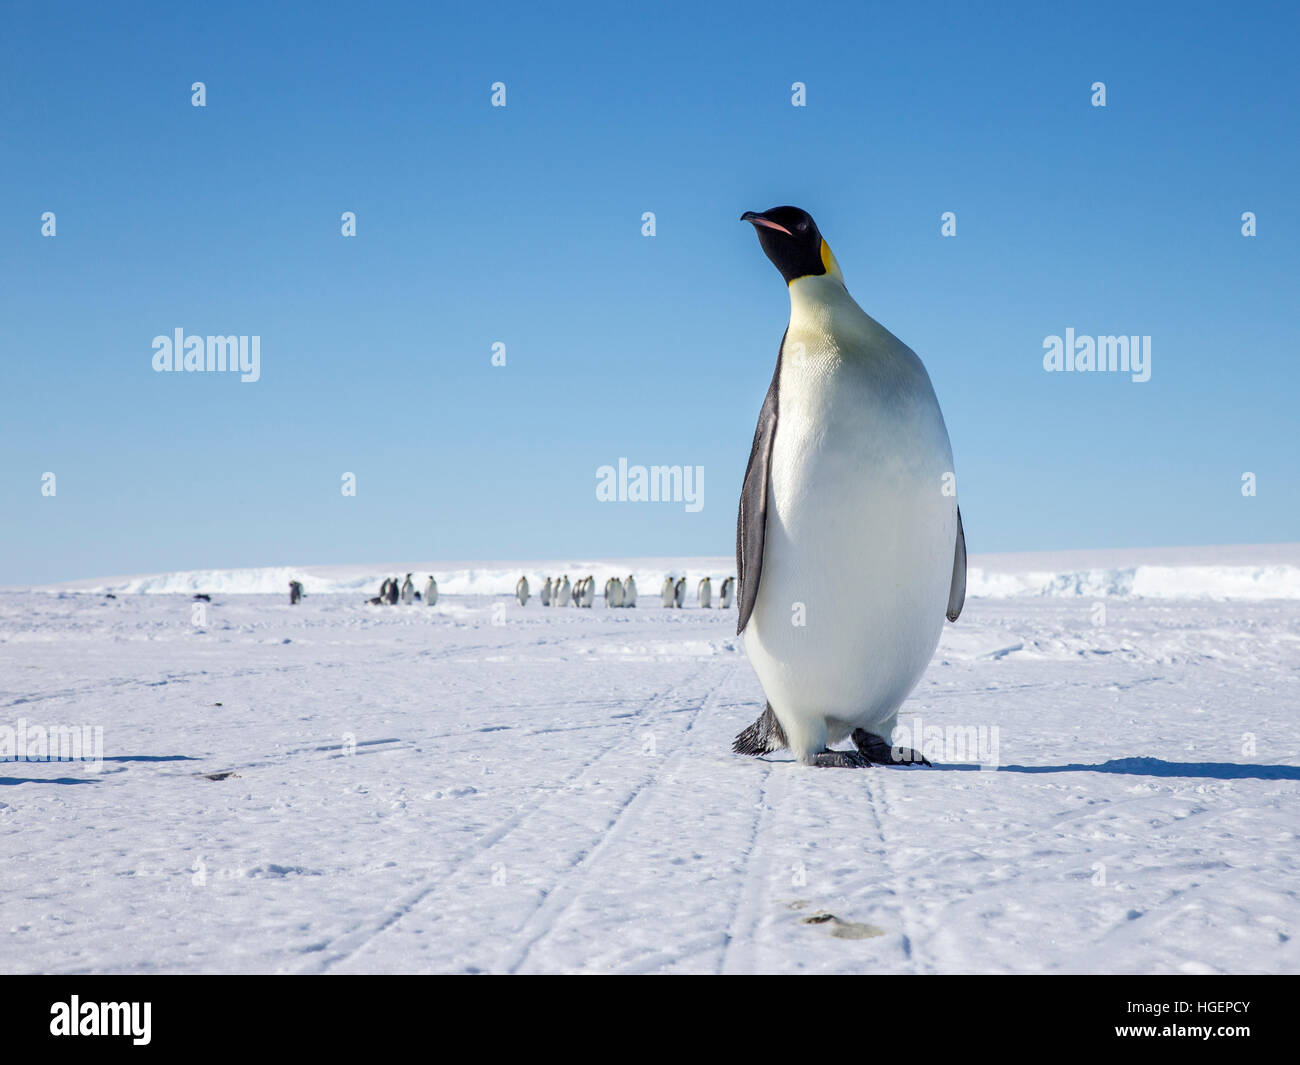 An enquiring Emperor Penguin breaks away from the main group walking to the sea. - Stock Image